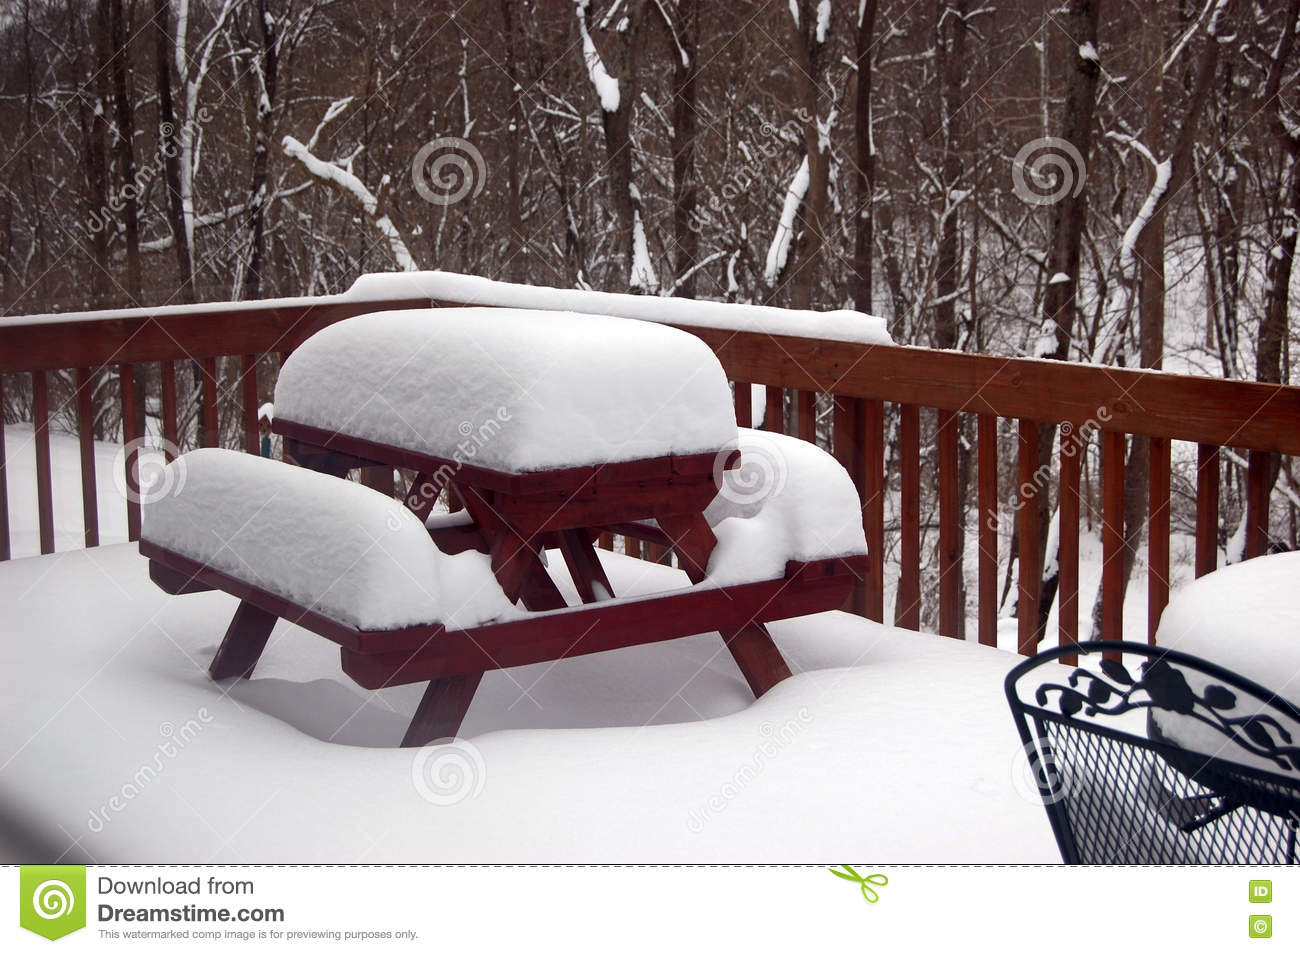 10 inches of snow on the deck